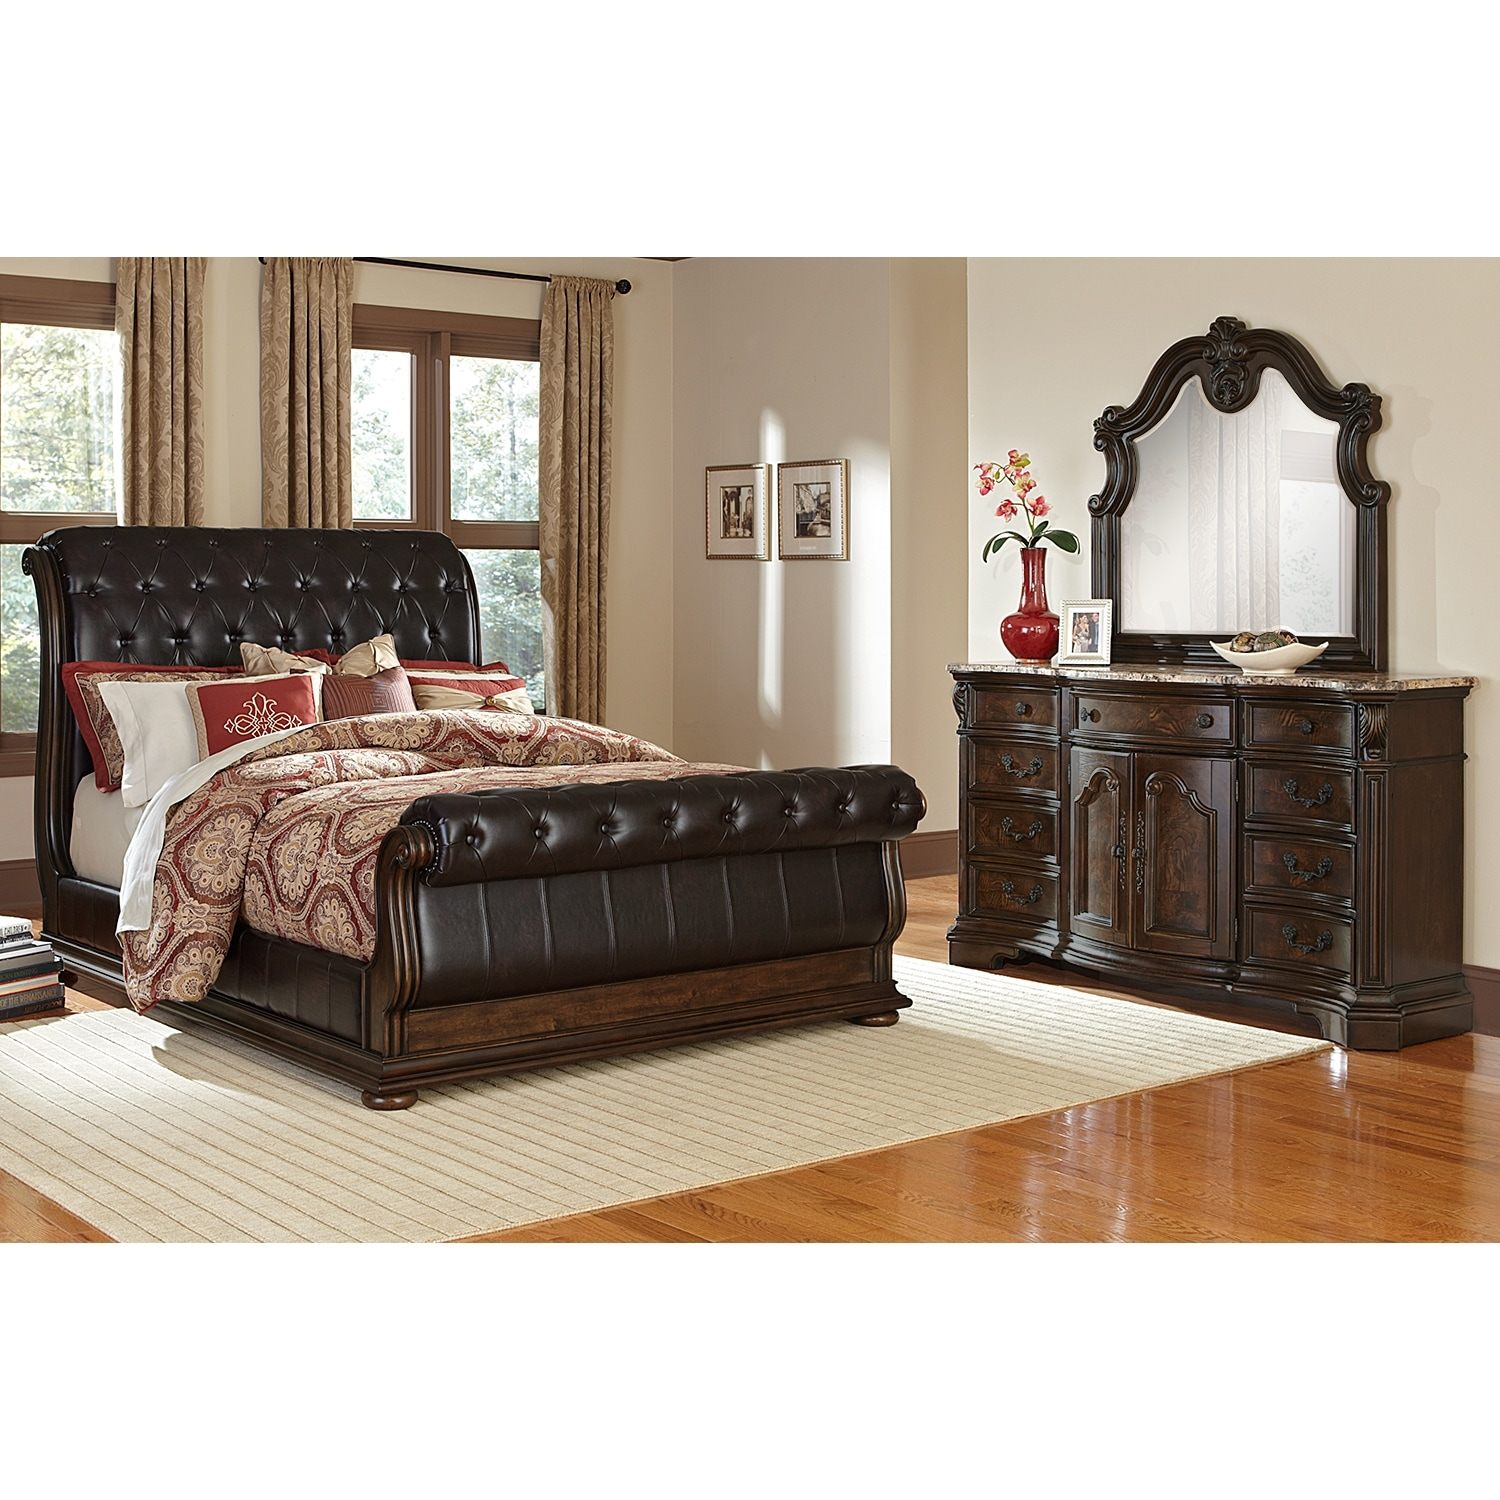 Monticello pecan ii 5 pc king bedroom value city furniture for Furniture bedroom furniture